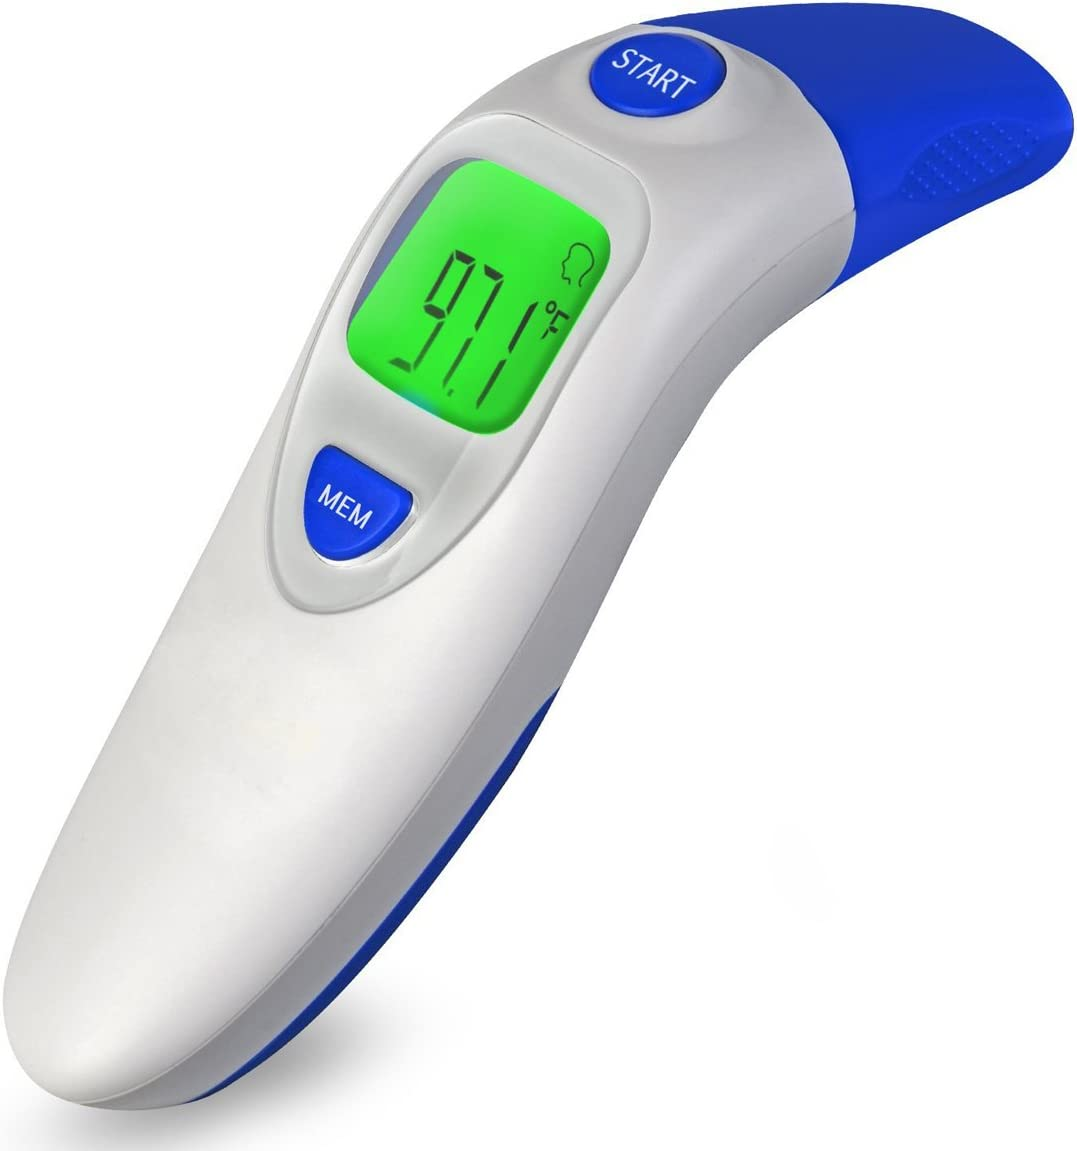 DyNamic Digital Baby Adult Body Temperature Tester Portable Infrared IR Ear Thermometer ?//?